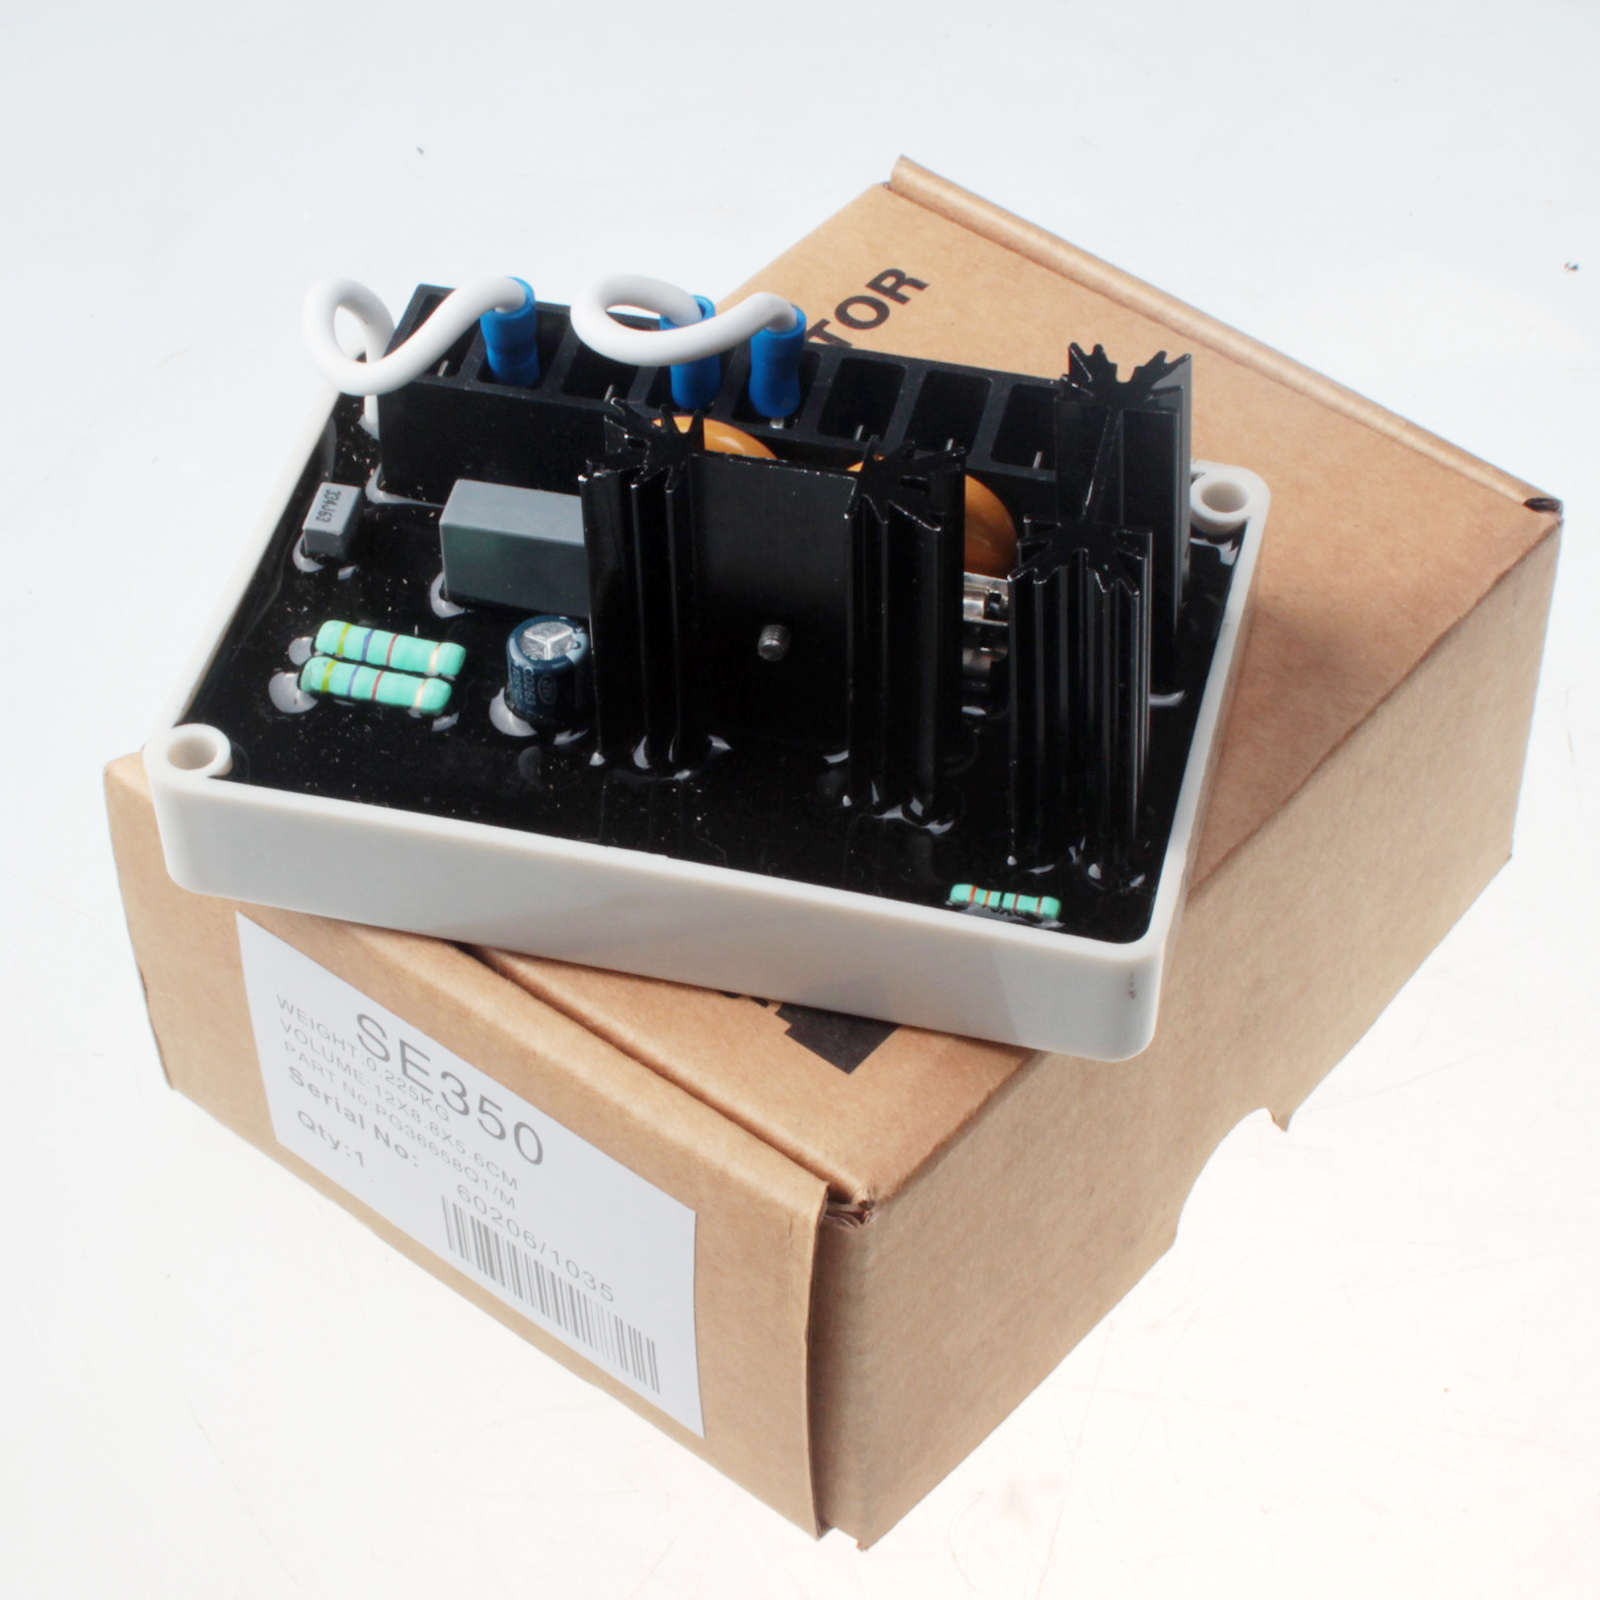 Details about For Marathon AVR SE350 Automatic Voltage Regulator Generator  voltage regulator